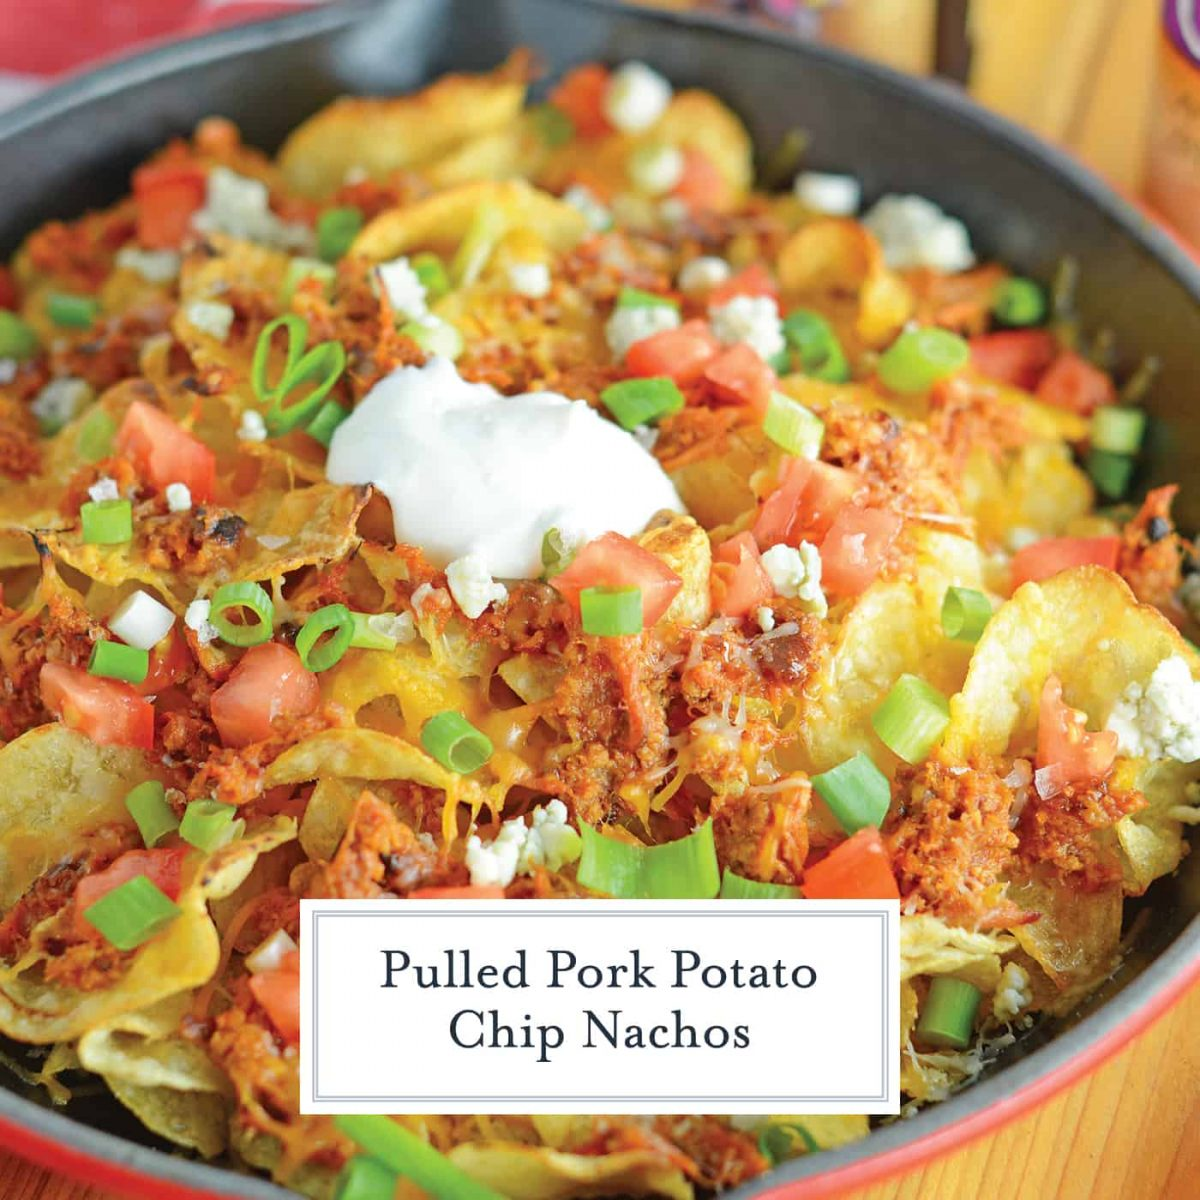 Pulled Pork Potato Chip Nachos are an easy appetizer or meal that your whole family will love made with kettle cooked potato chips and zesty pulled pork! #nachorecipes #pulledpork www.savoryexperiments.com